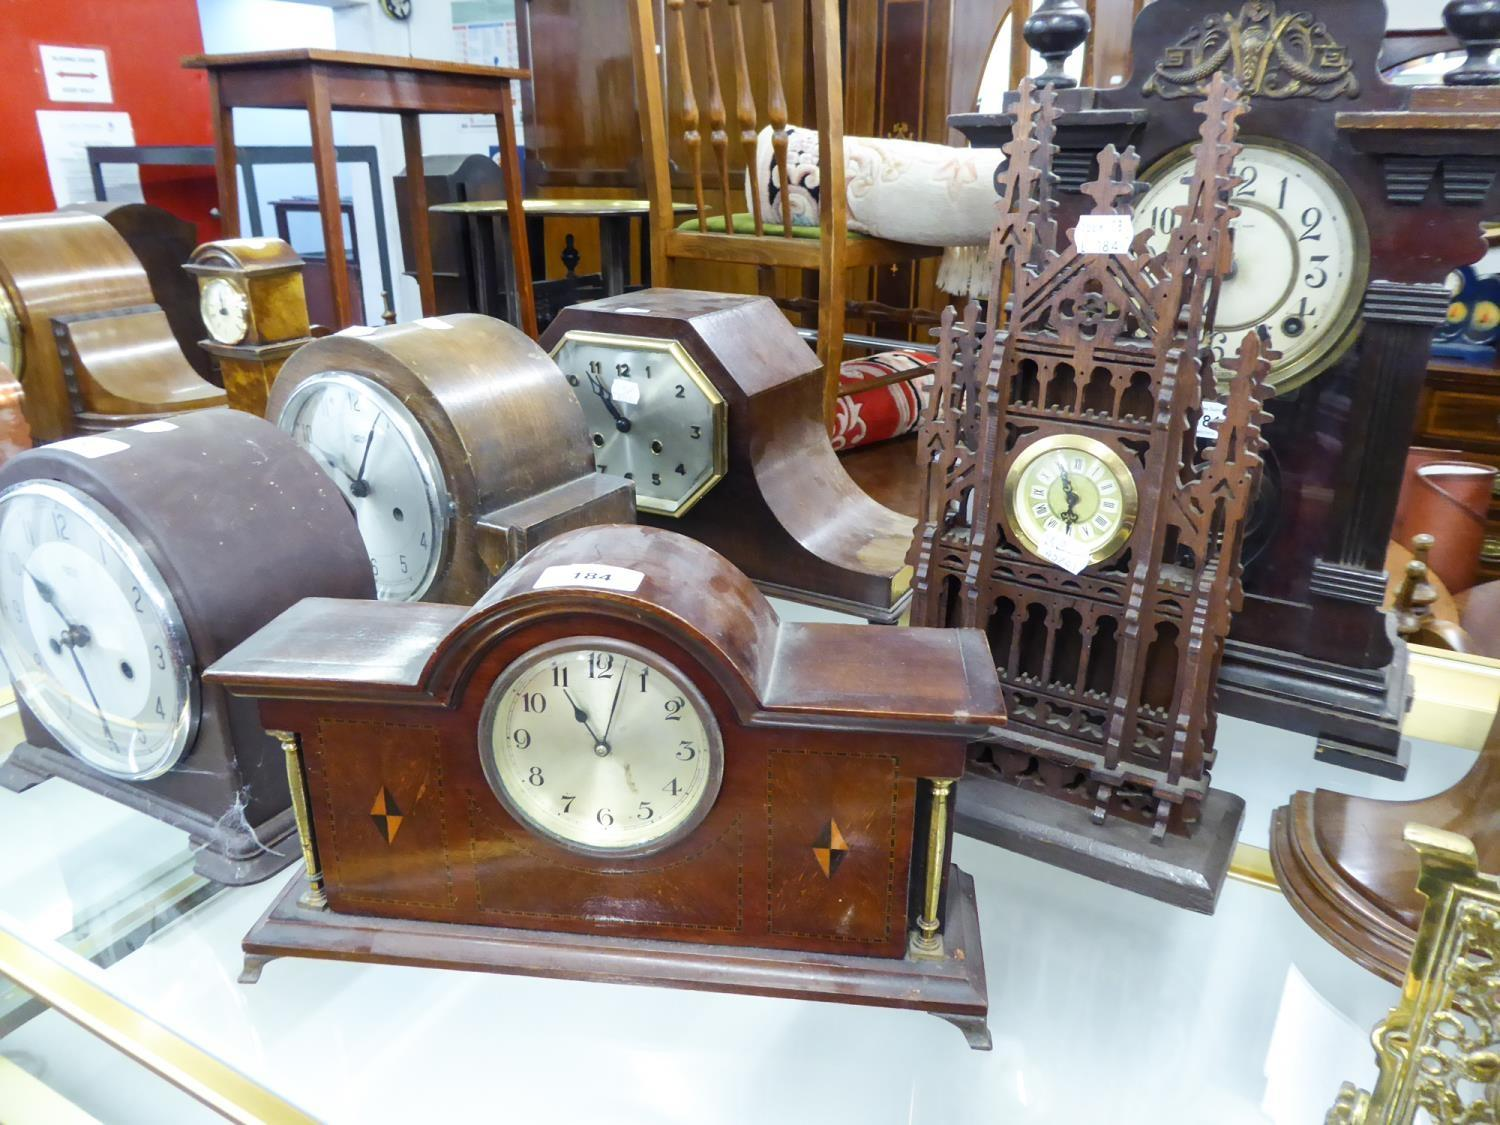 Lot 184 - EDWARDIAN INLAID MAHOGANY MANTEL CLOCK with silvered arabic dial, also a MODERN FRET-WORK '